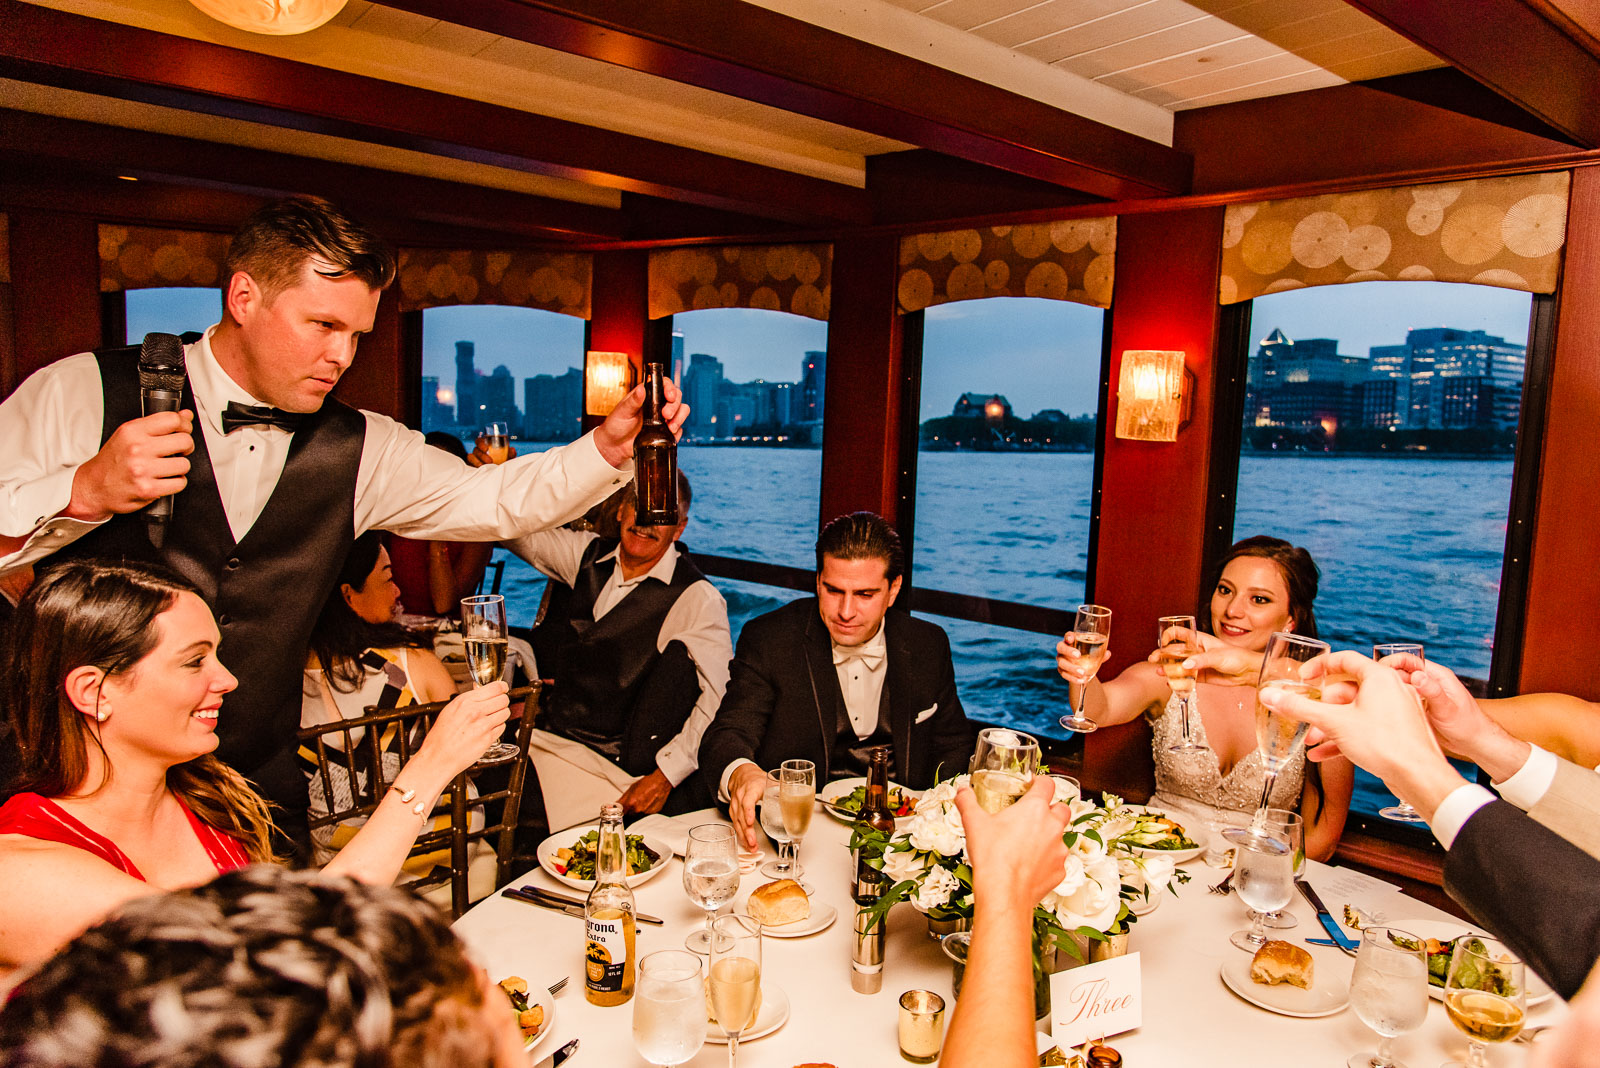 Groomsman toasts the couple